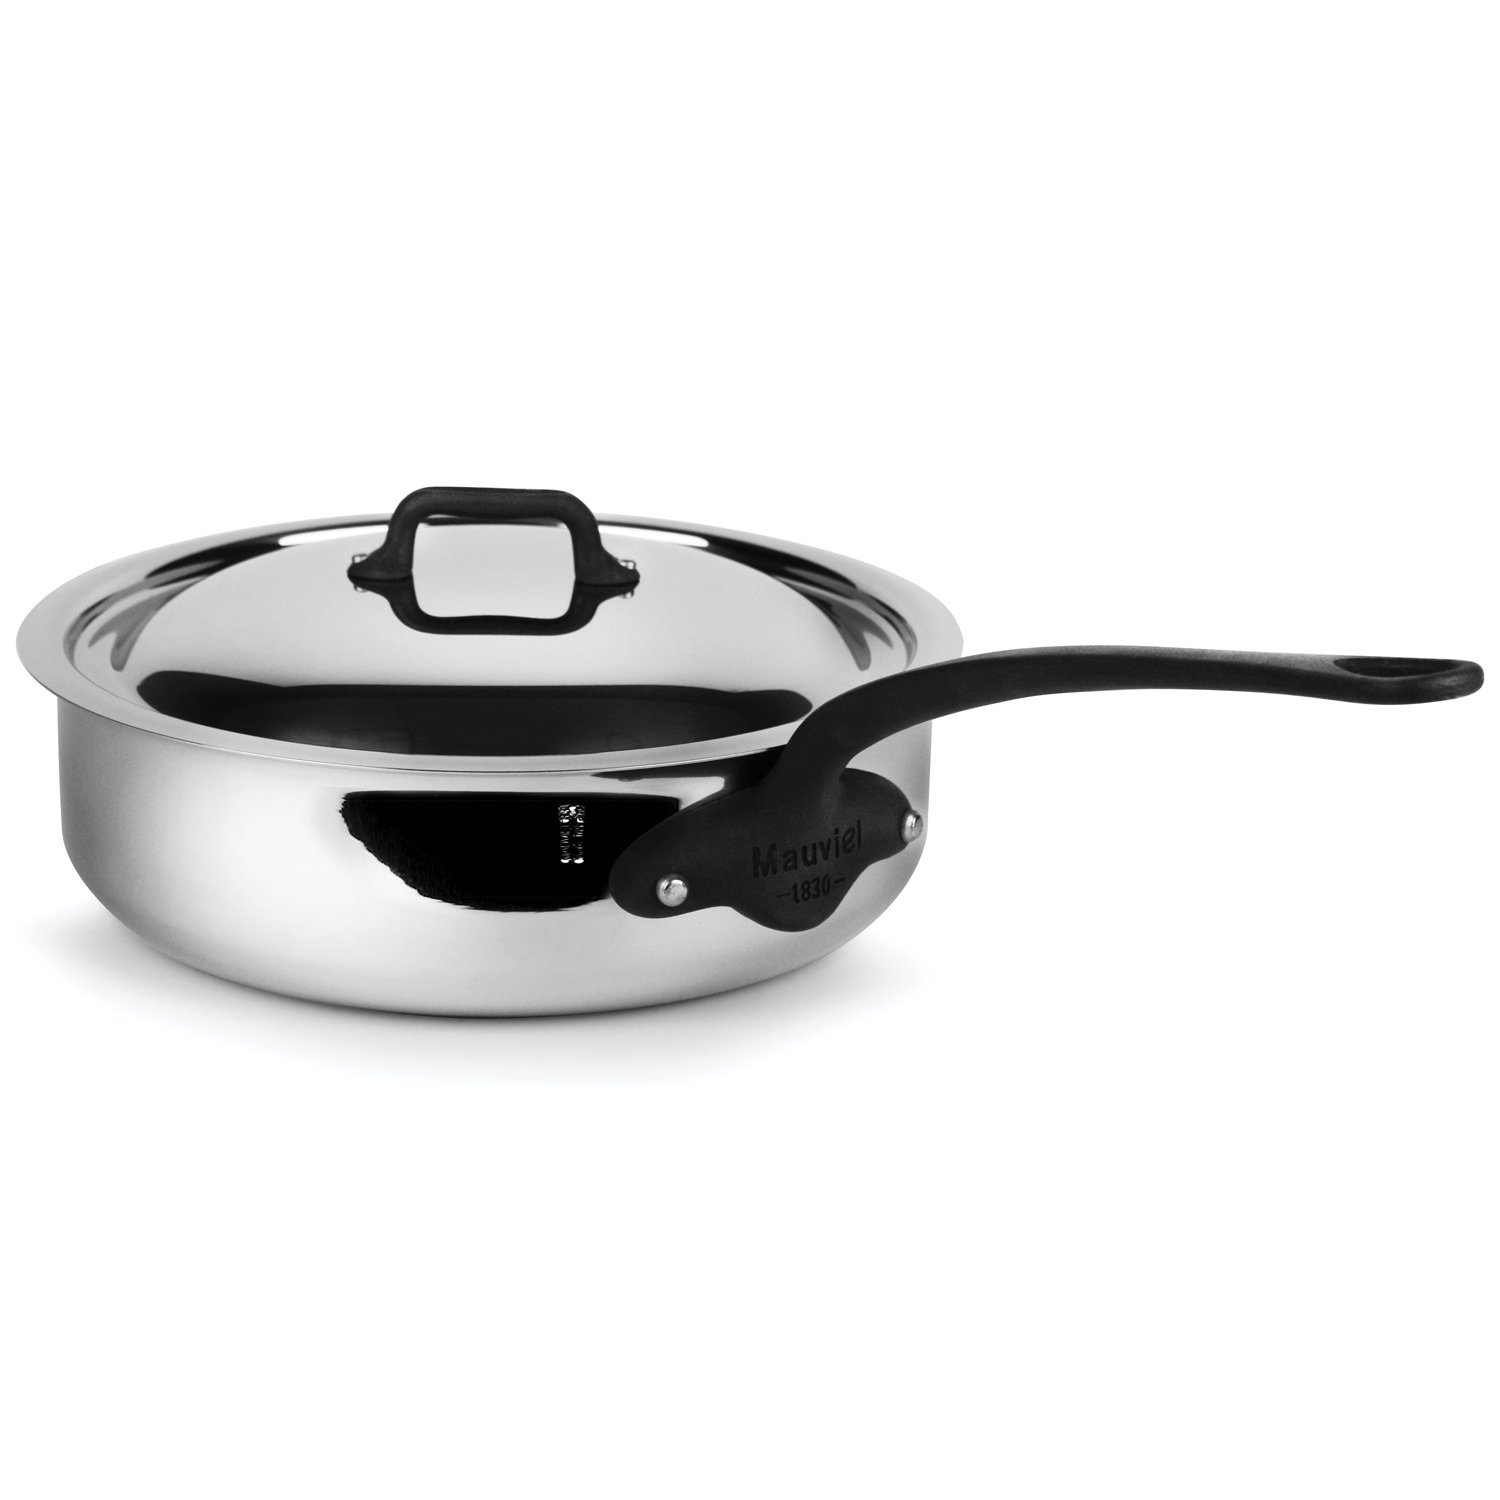 Mauviel M'Cook Pro 5-ply Stainless Steel 3.4-quart Saute Pan with Lid